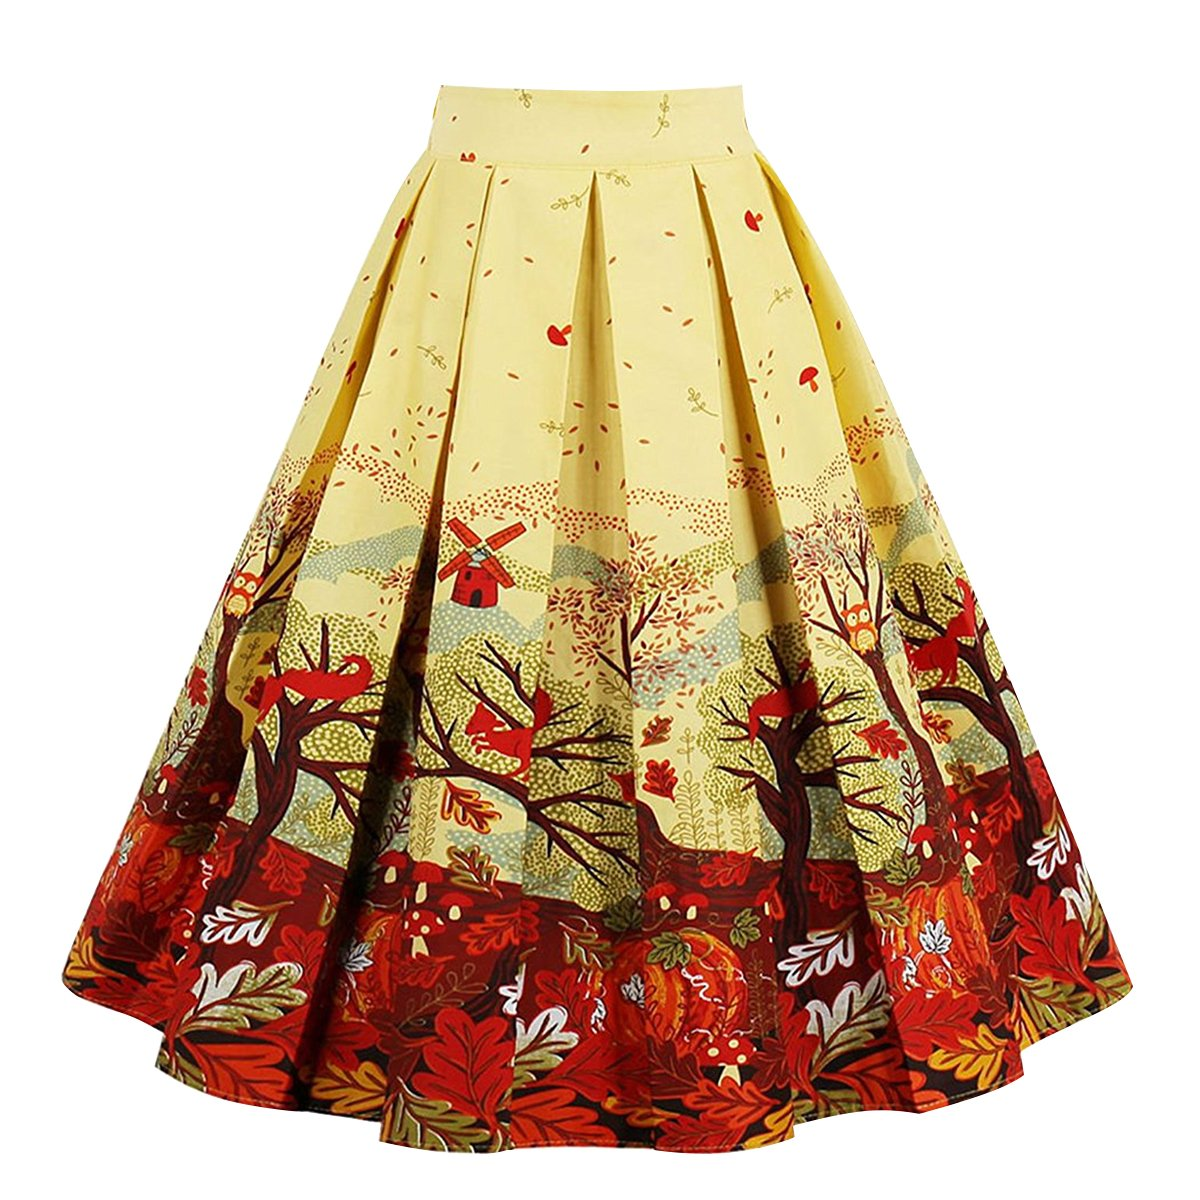 Girstunm Women's Pleated Vintage Skirt Floral Print A-Line Midi Skirts with Pockets Autumn-Melody S